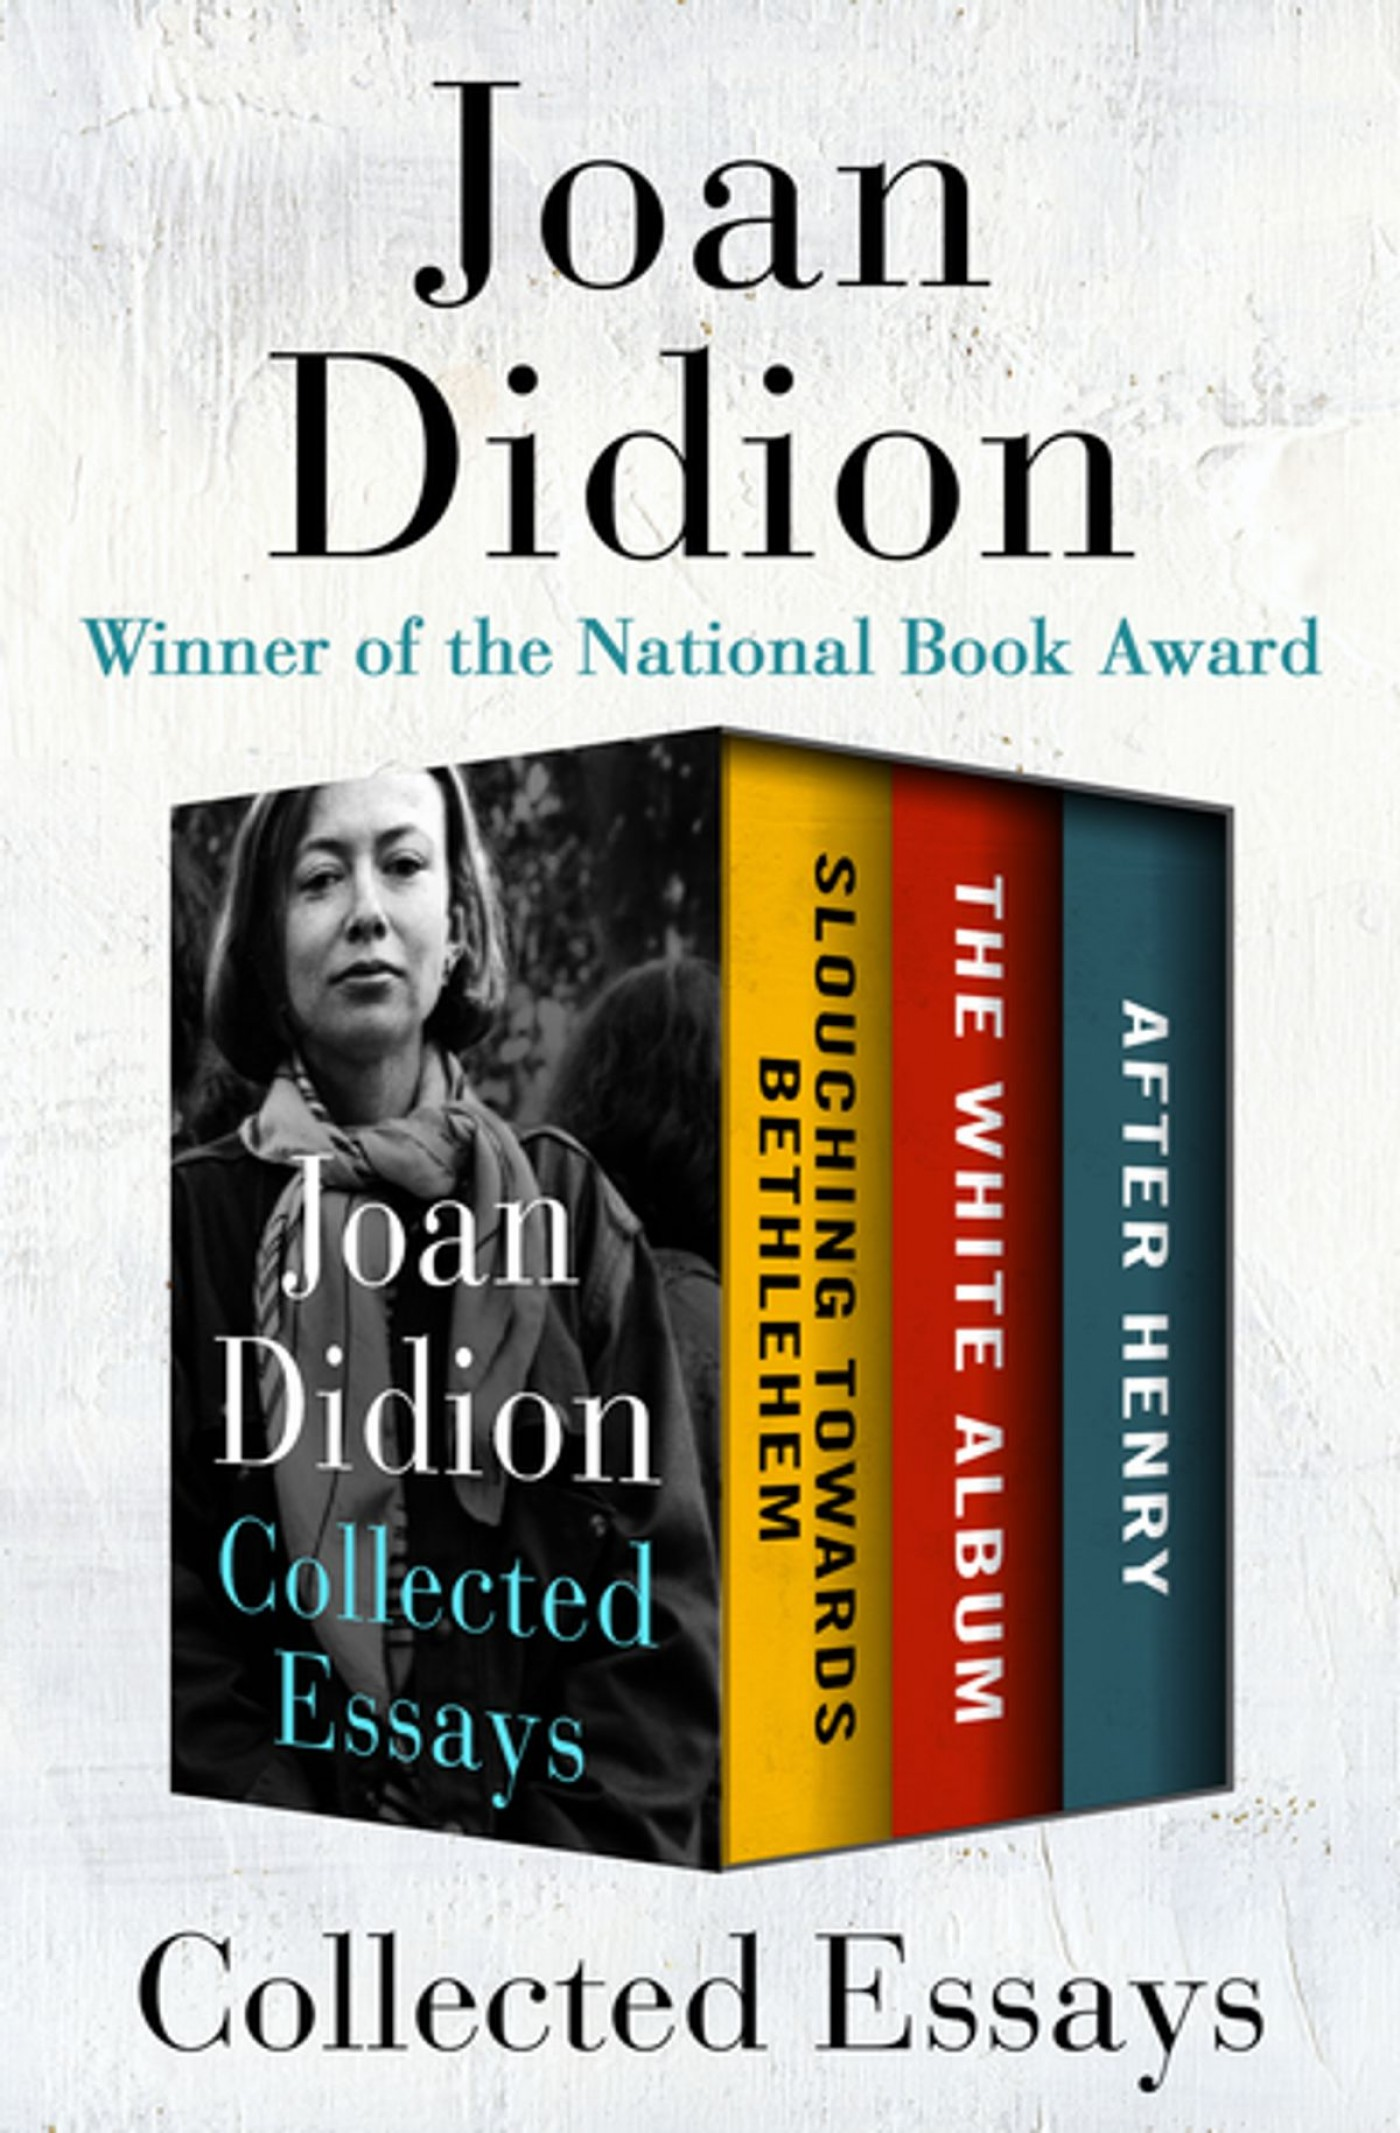 010 Collected Essays Joan Didion Essay Singular Collections On Santa Ana Winds Amazon 1400